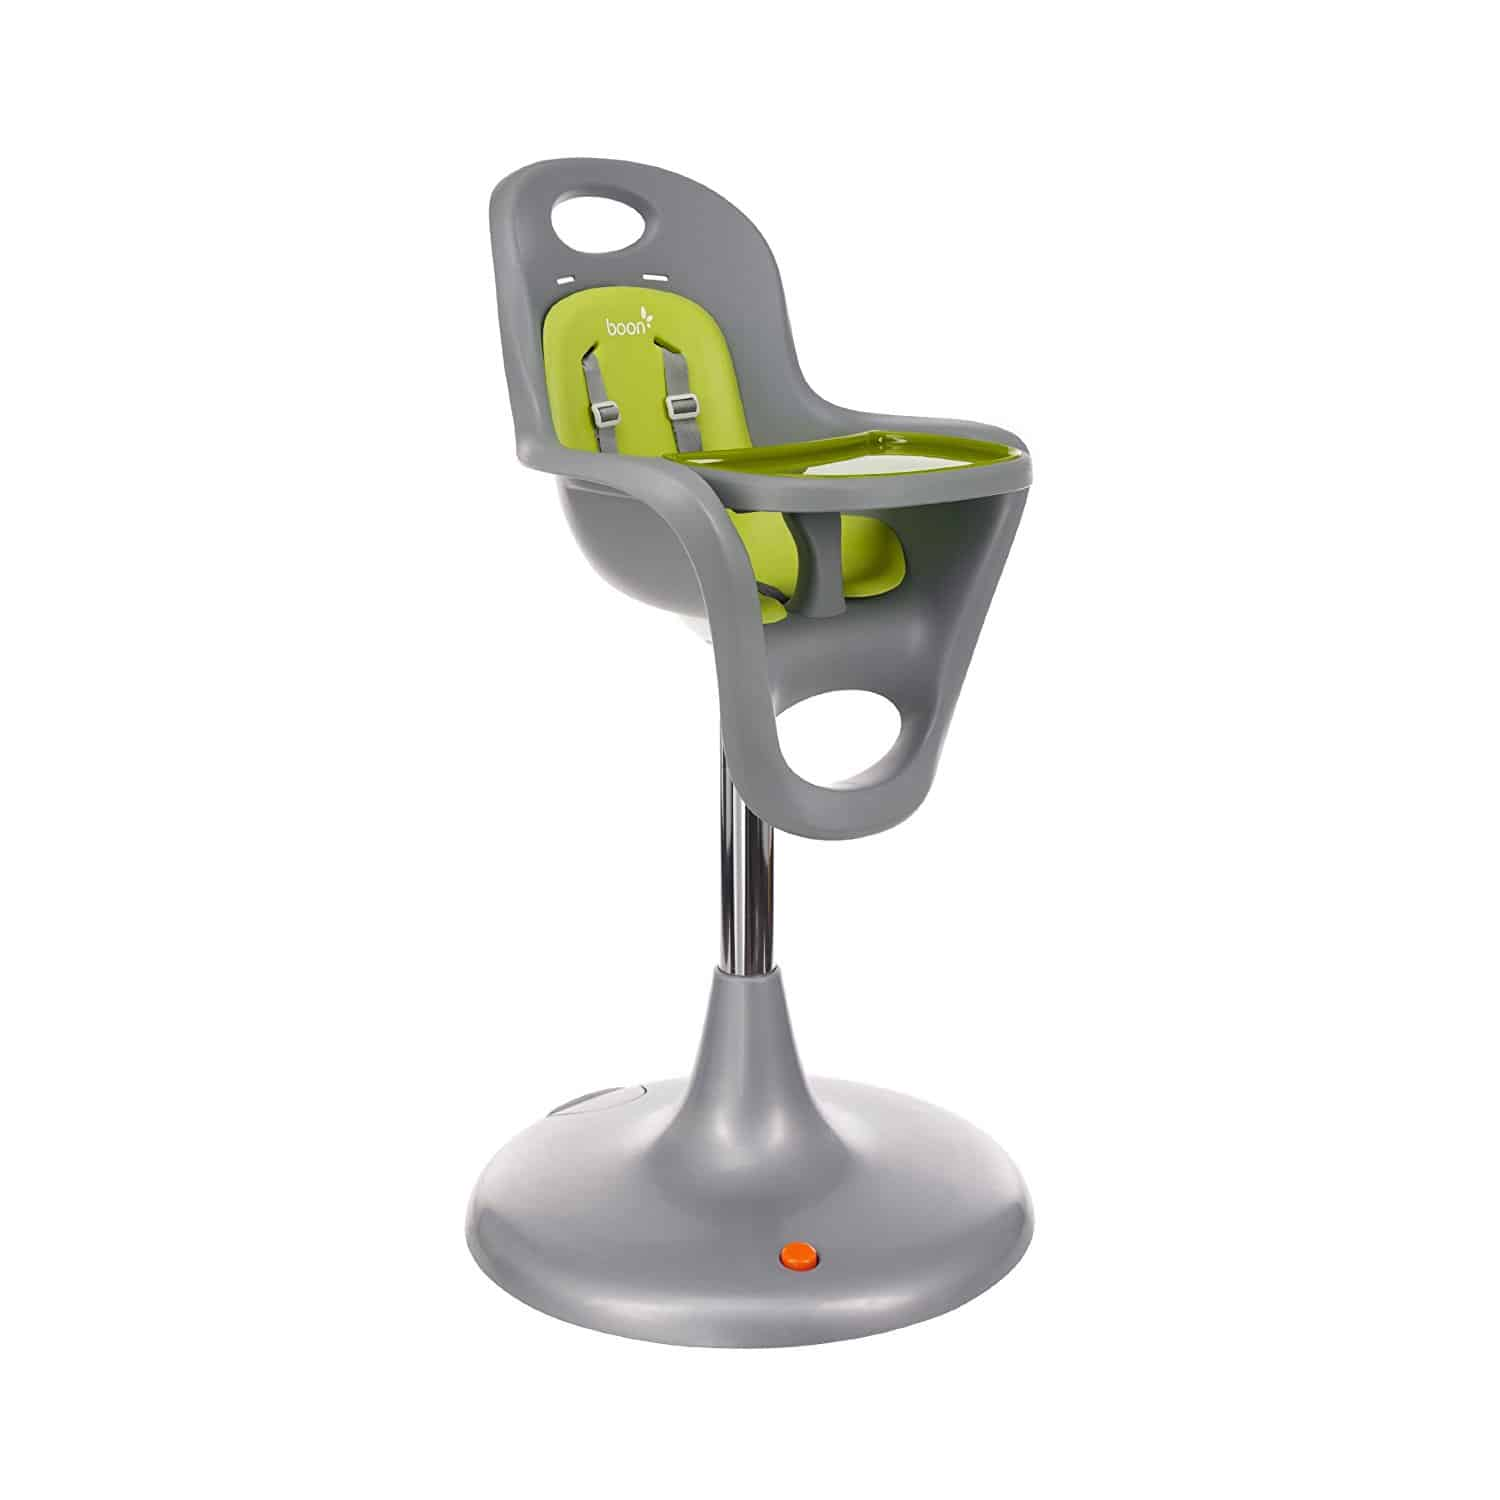 High Chair brand review: Boon